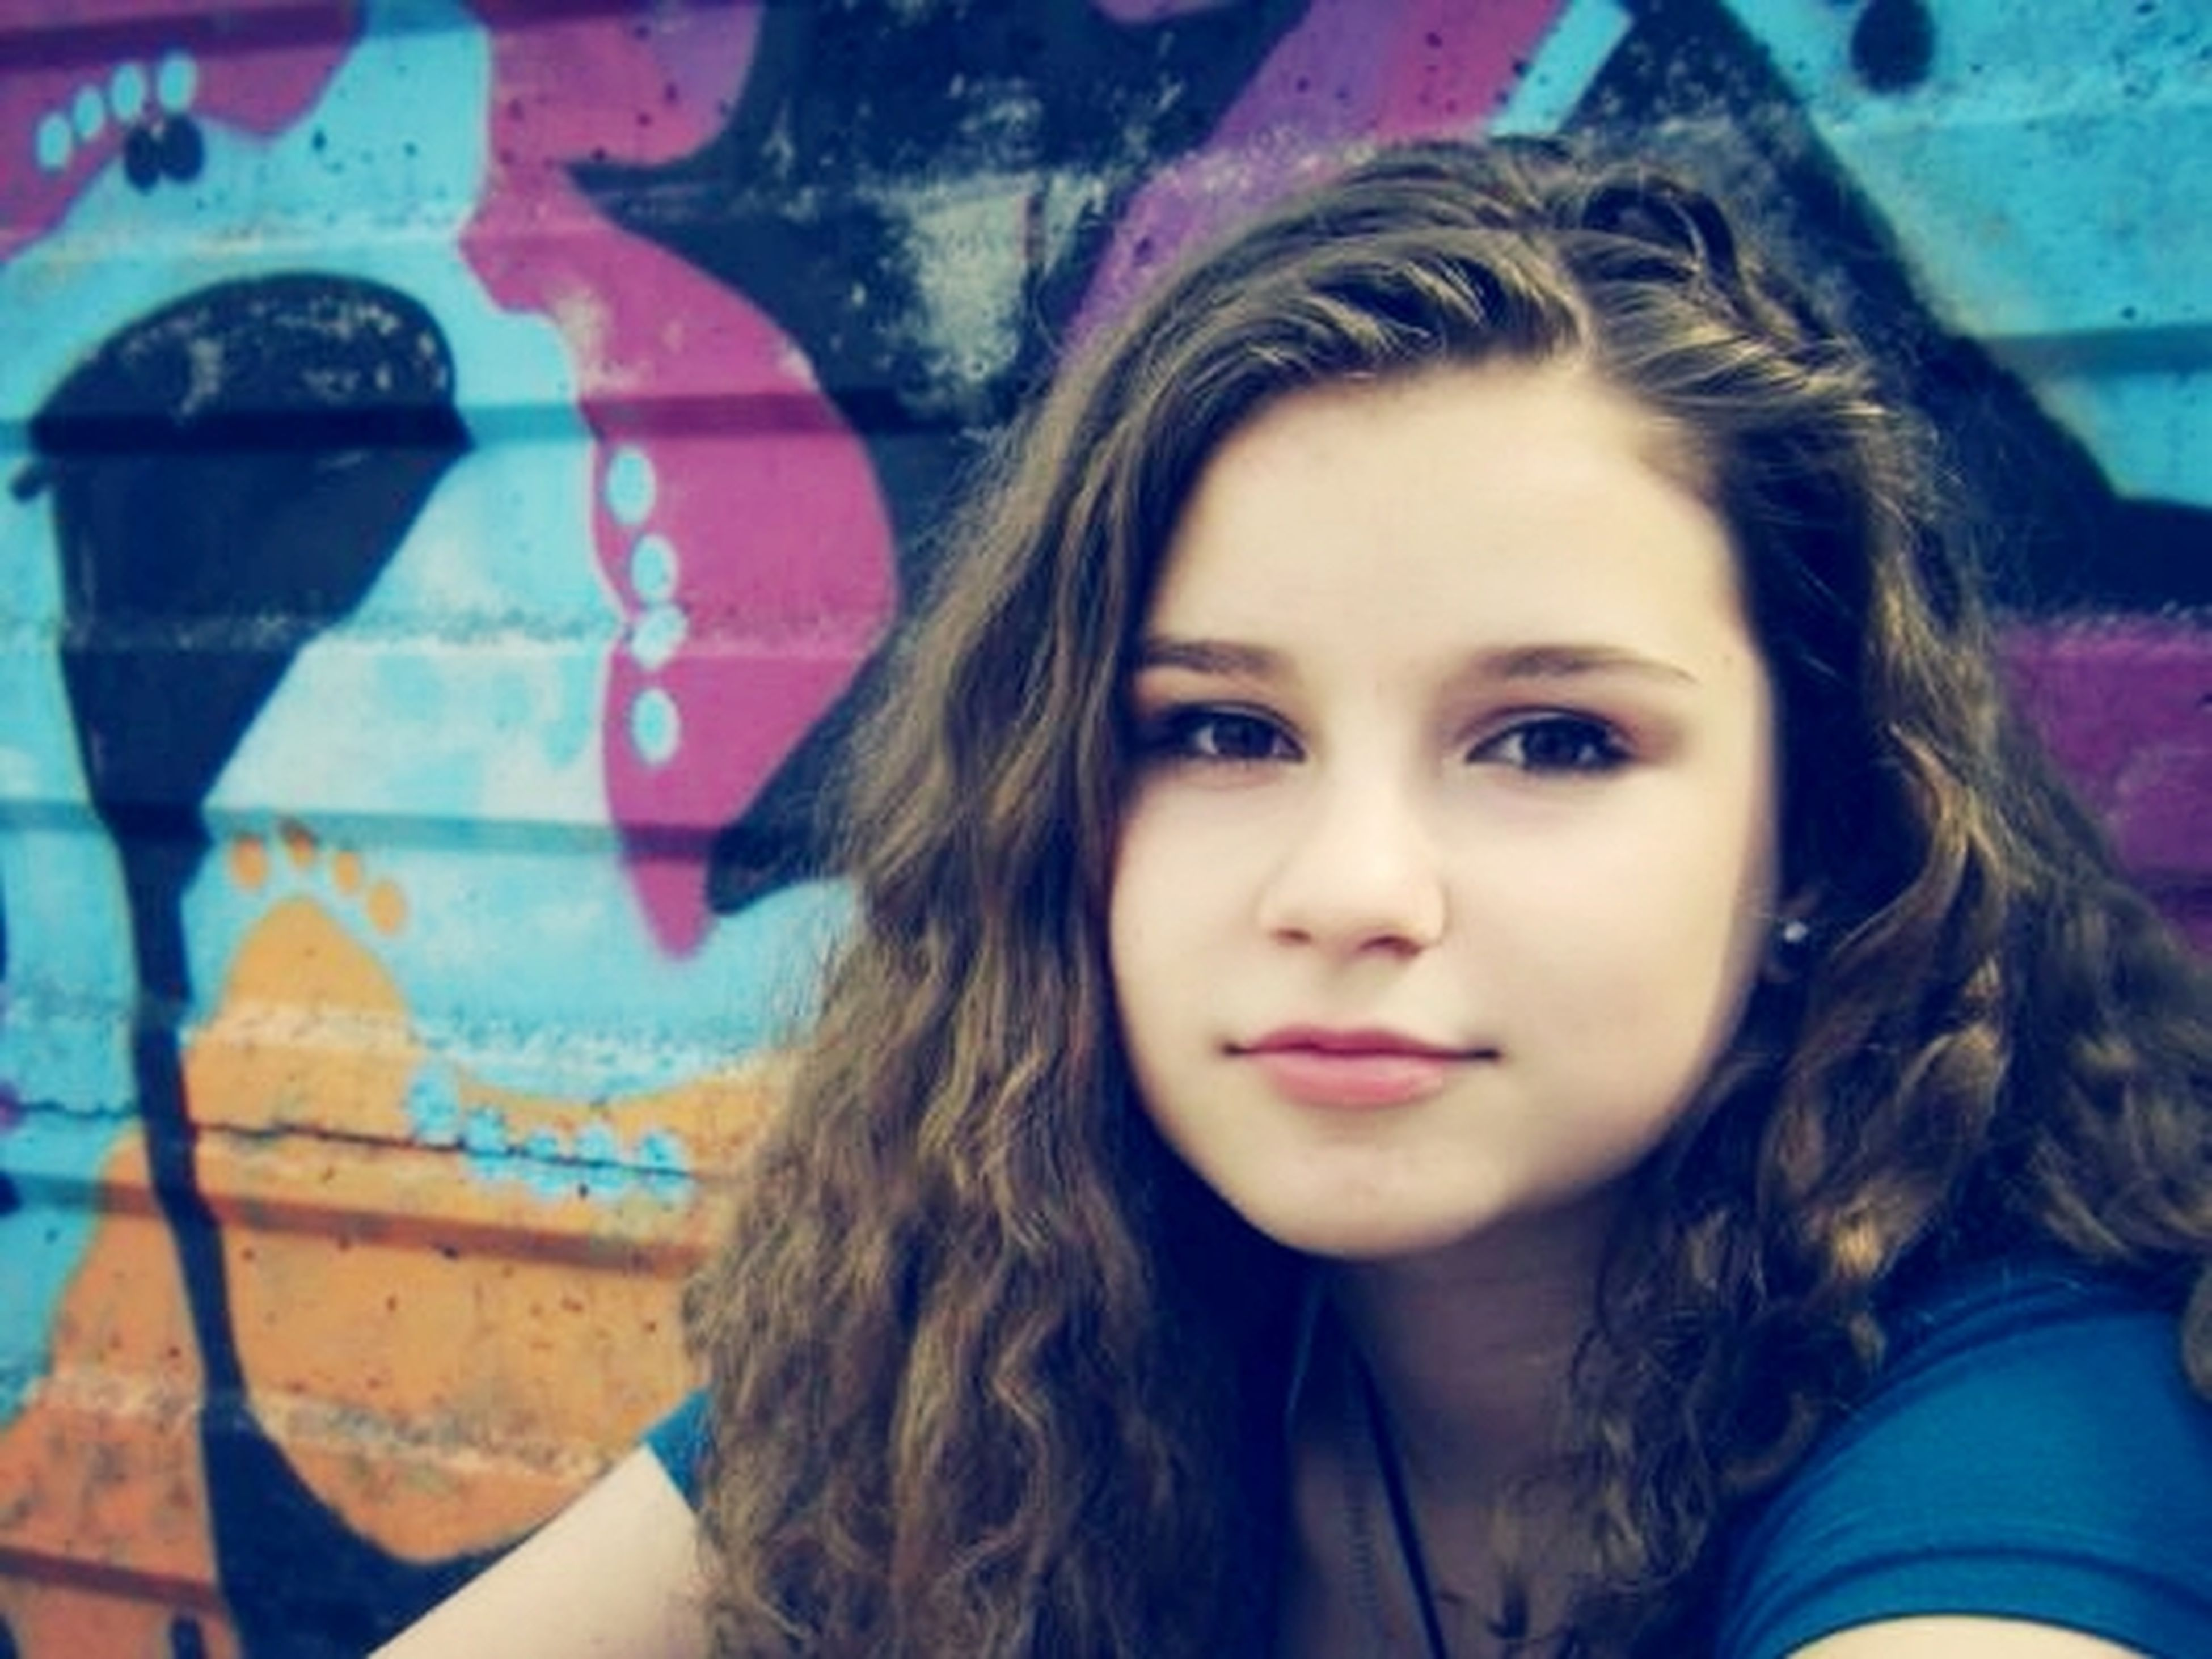 headshot, portrait, young adult, person, young women, looking at camera, long hair, lifestyles, leisure activity, front view, smiling, head and shoulders, close-up, focus on foreground, brown hair, day